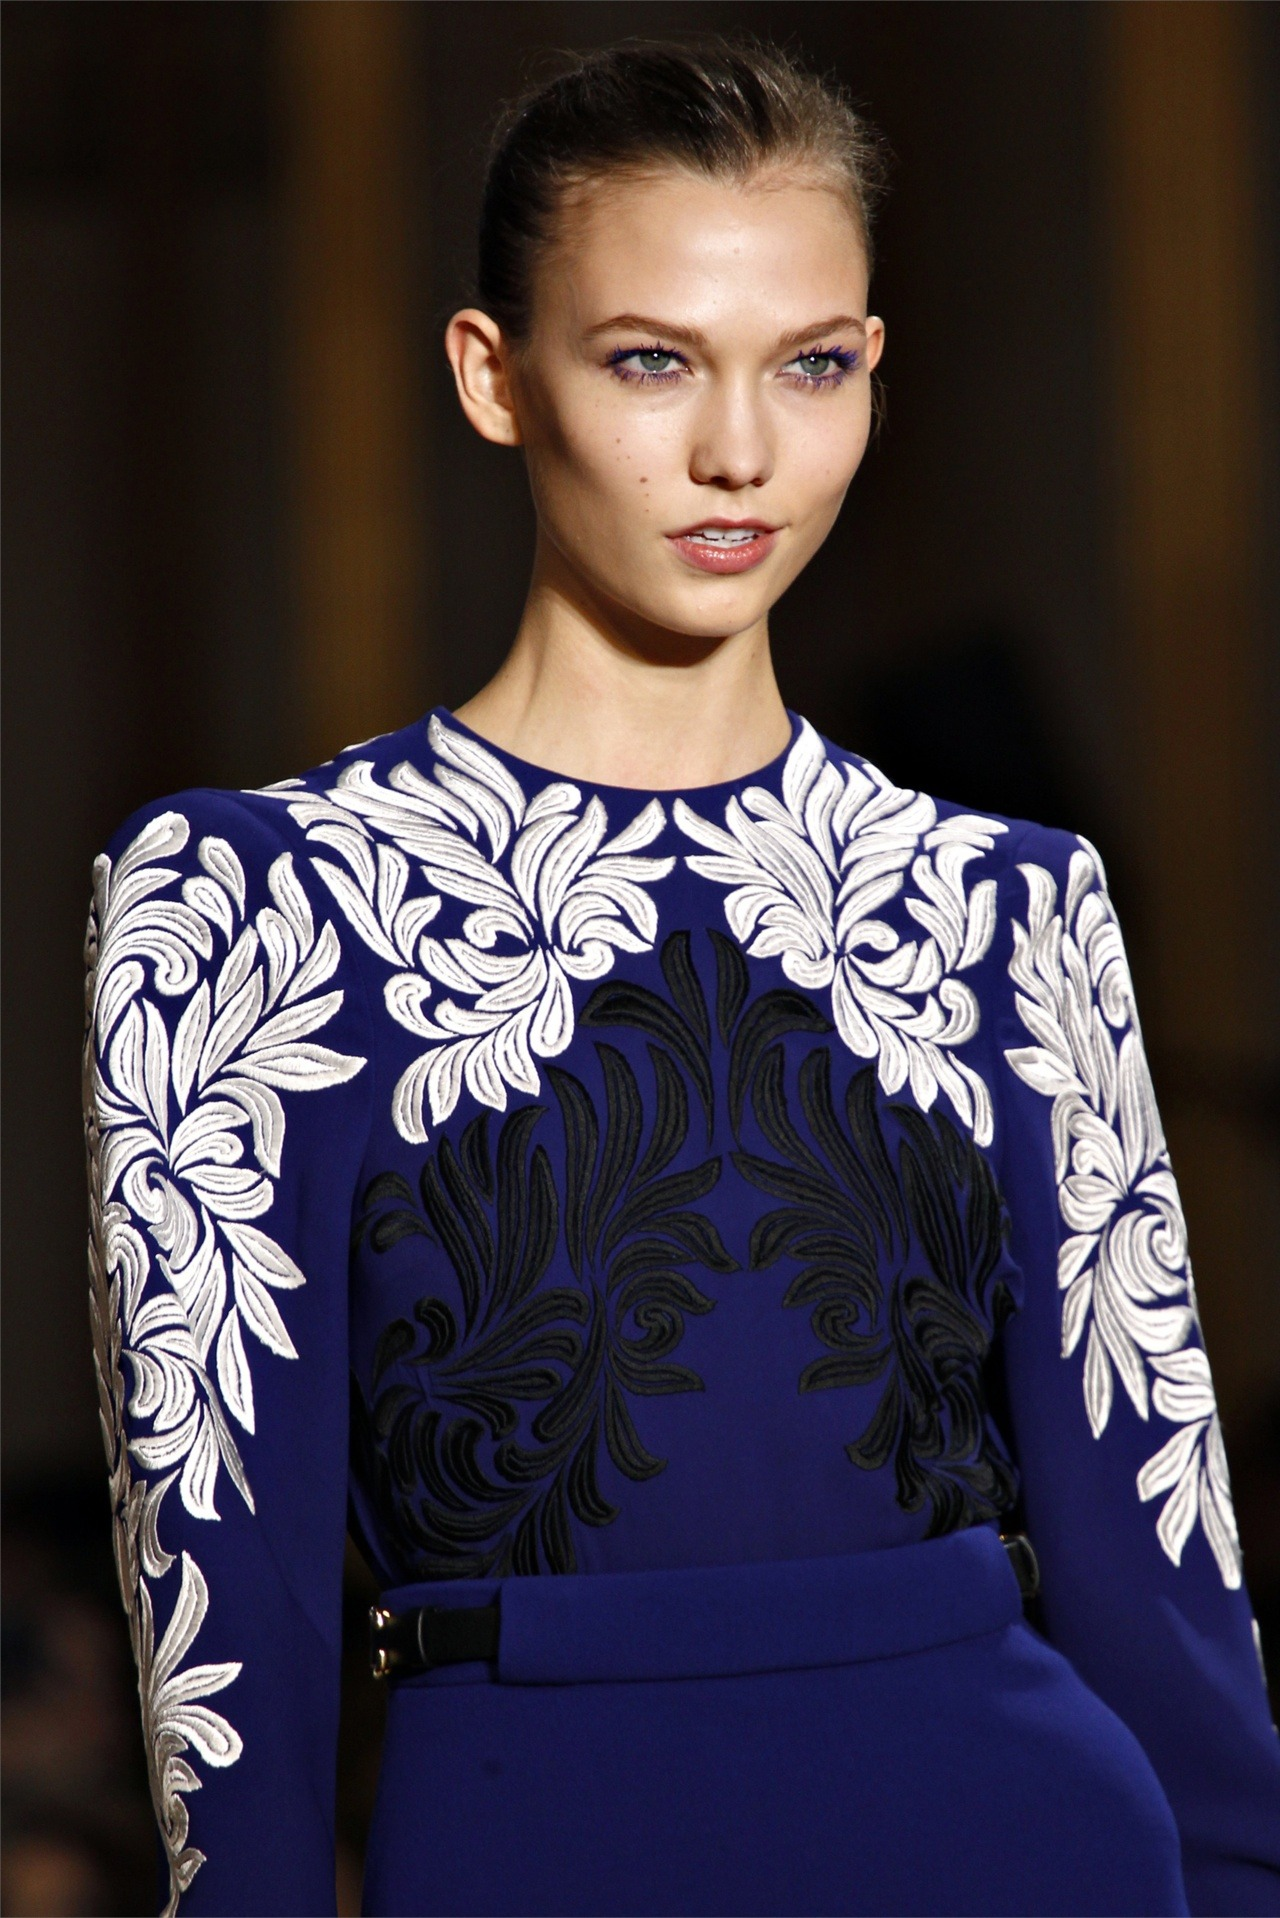 Supermodel Karlie Kloss in Stella McCartney fw12.